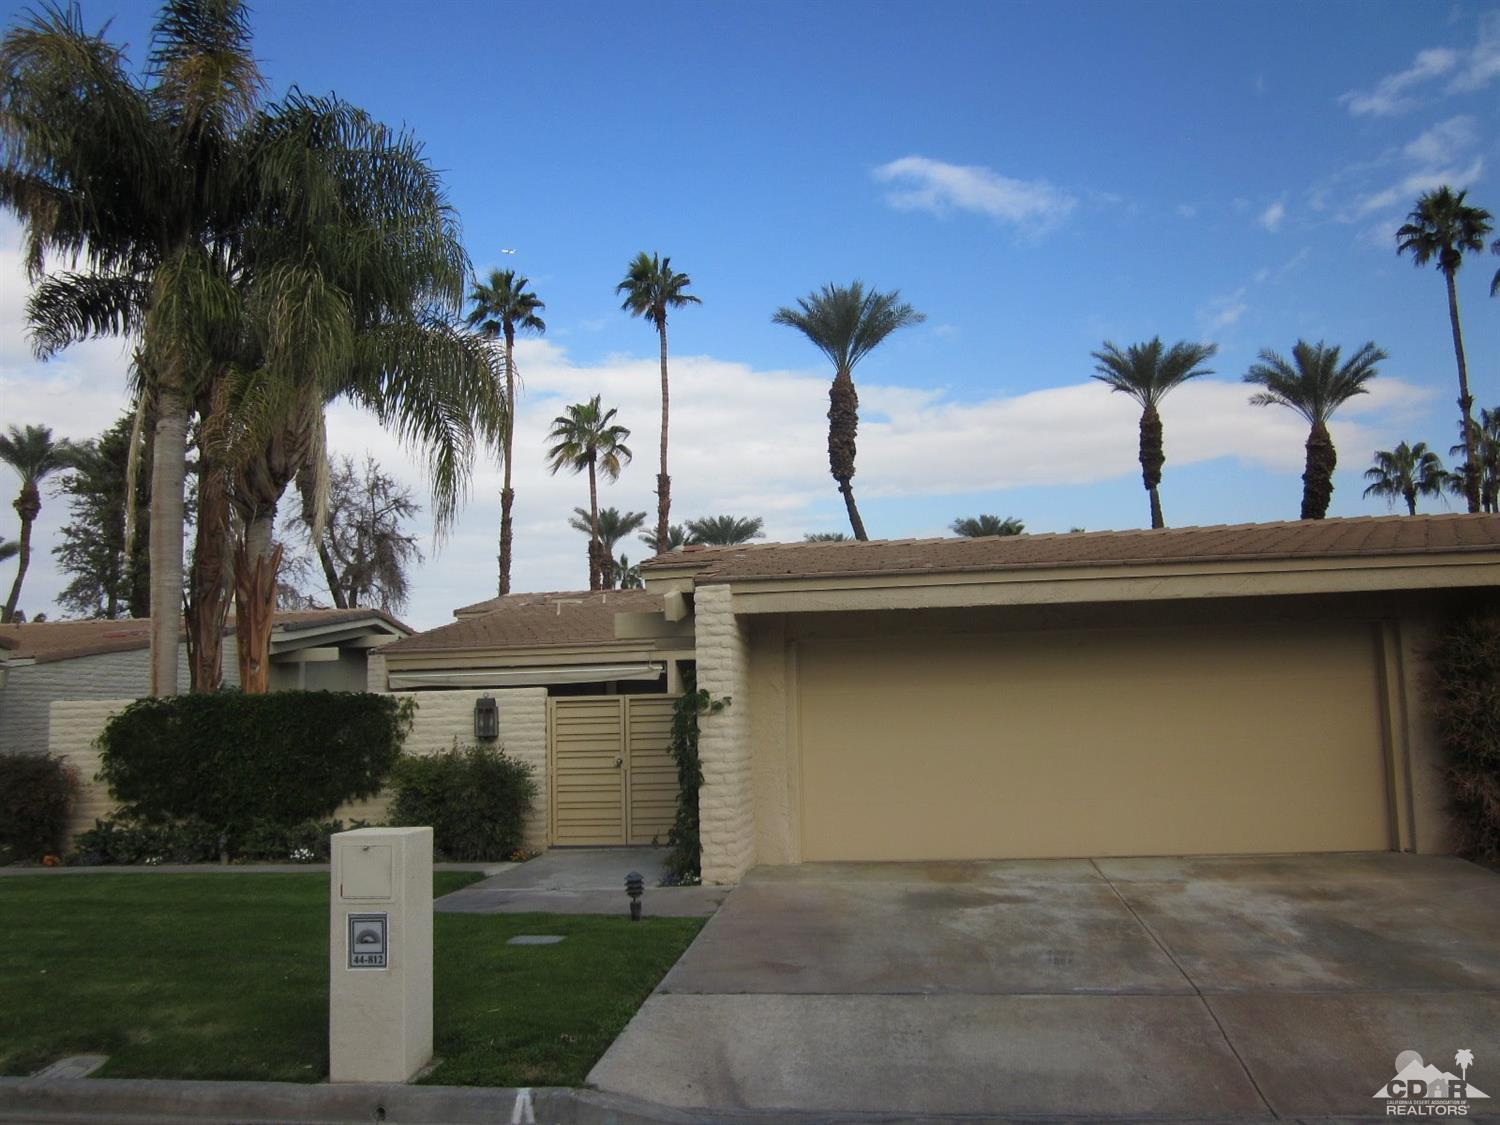 Desert horizons country club palm springs real estate for Palm springs condos for sale zillow